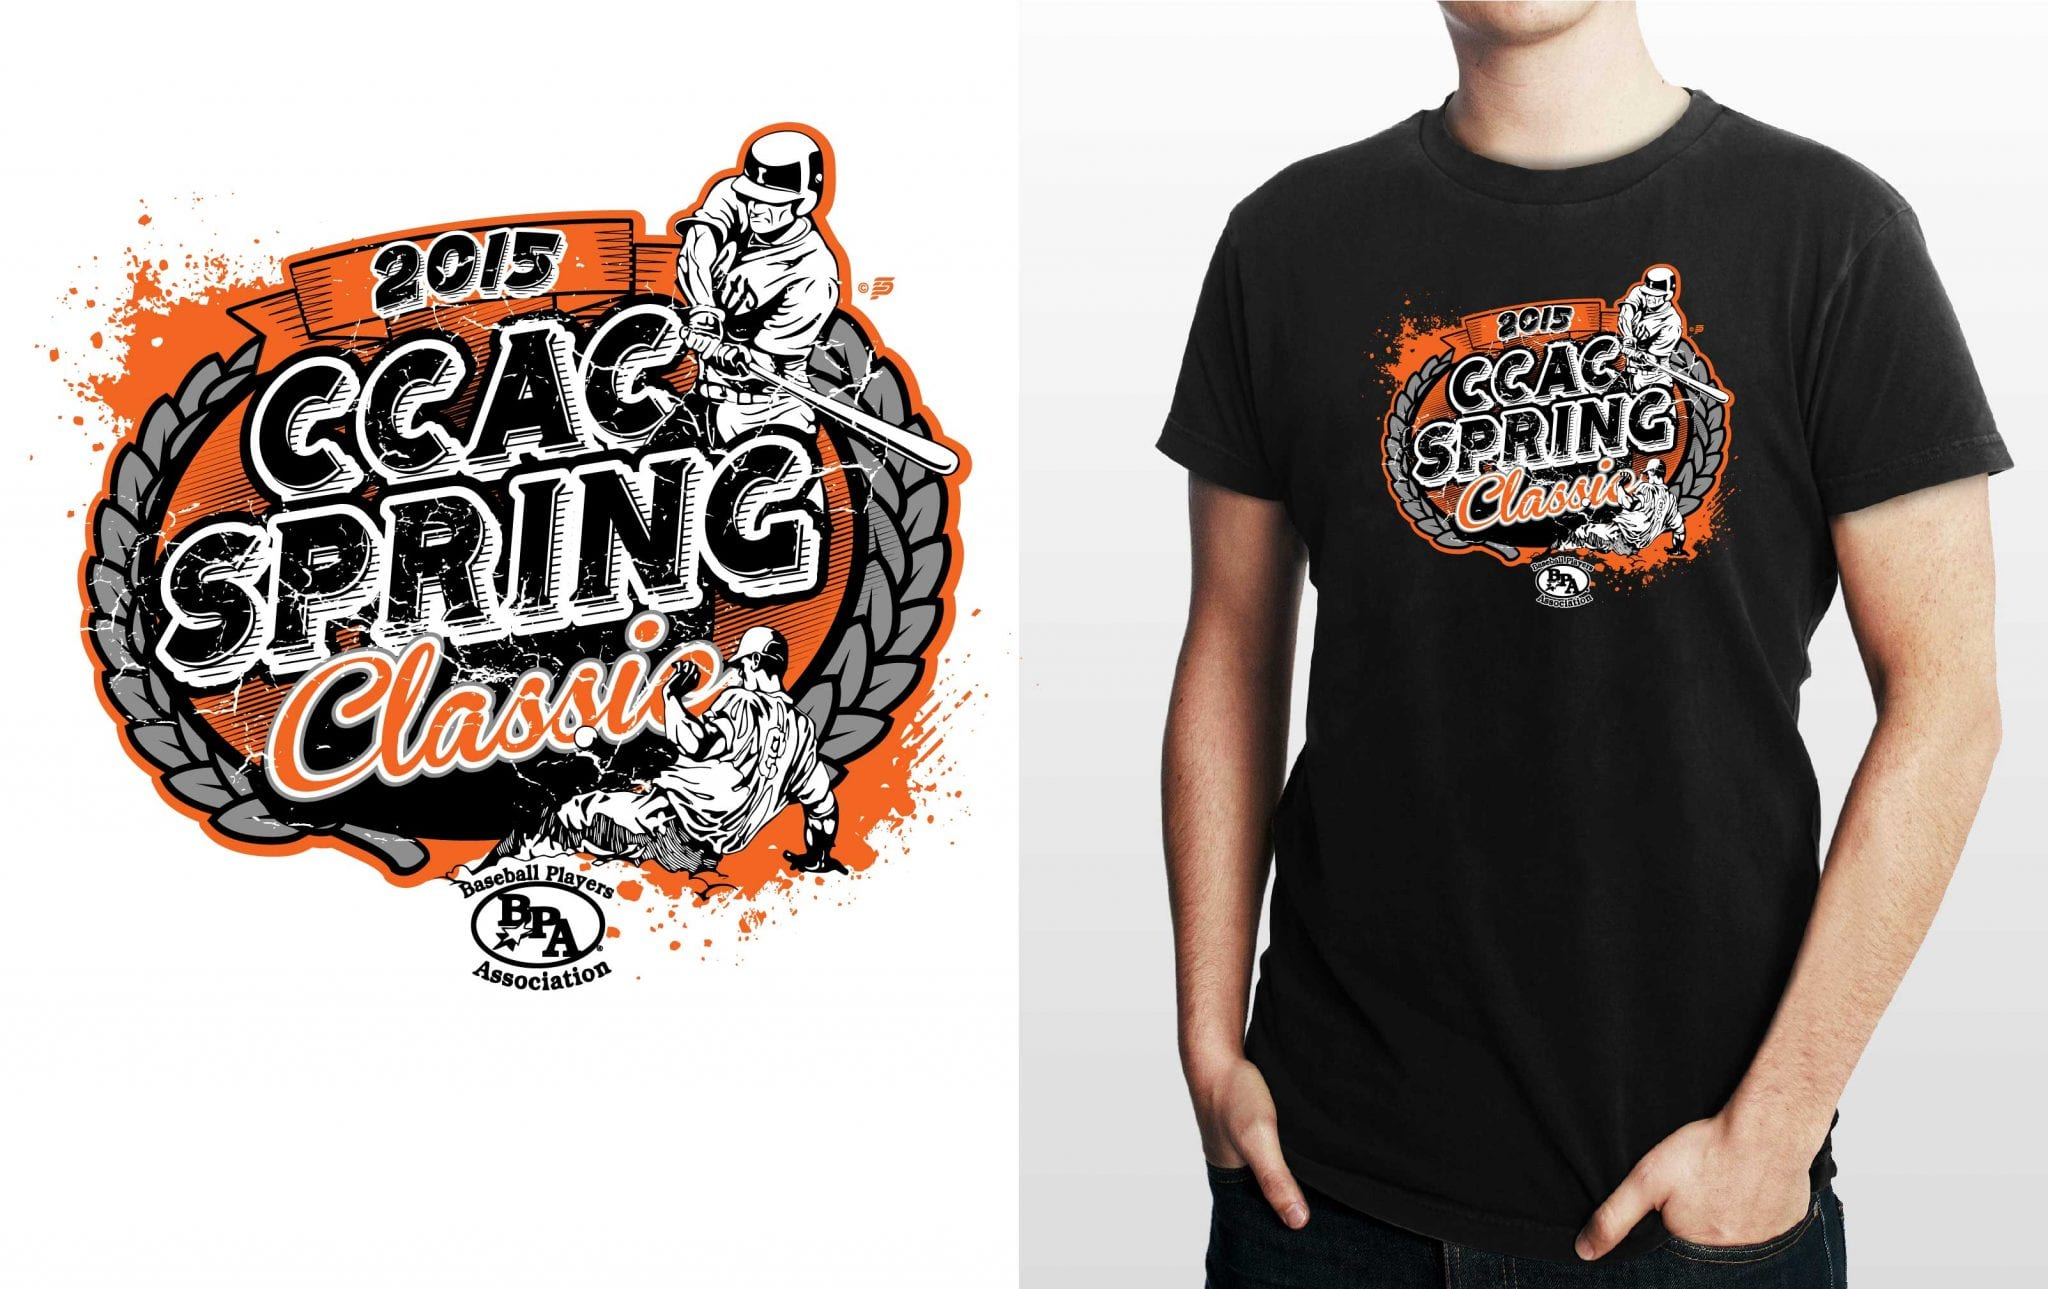 2015 CCAC Spring Classic PRINT READY UPDATED